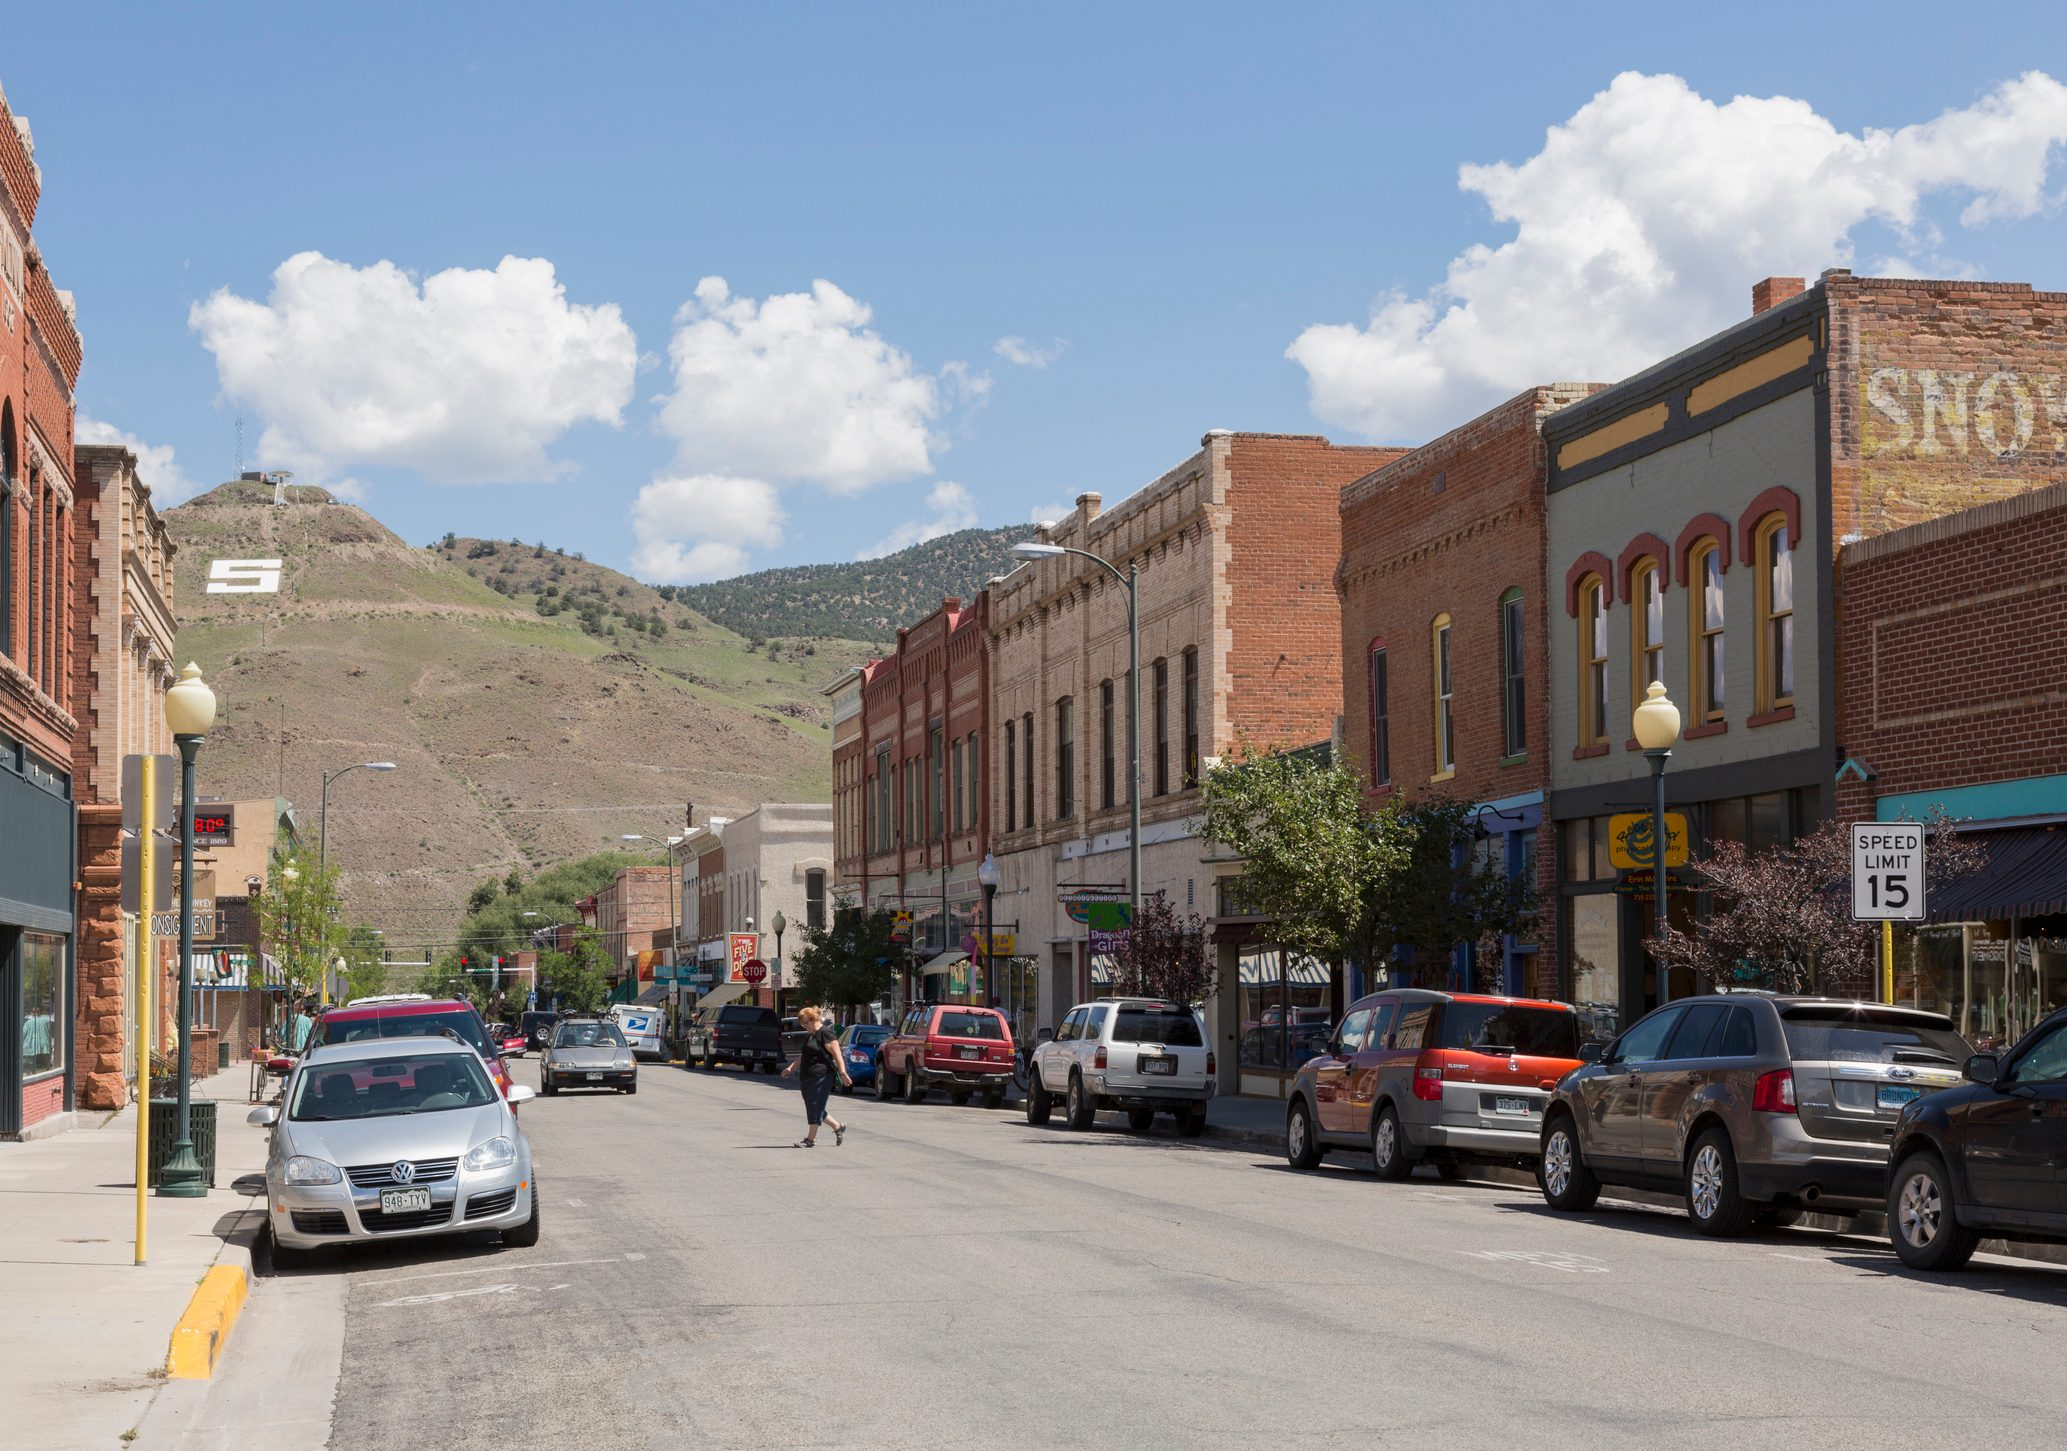 Main street of Salida, Colorado, USA with typical shops and stores